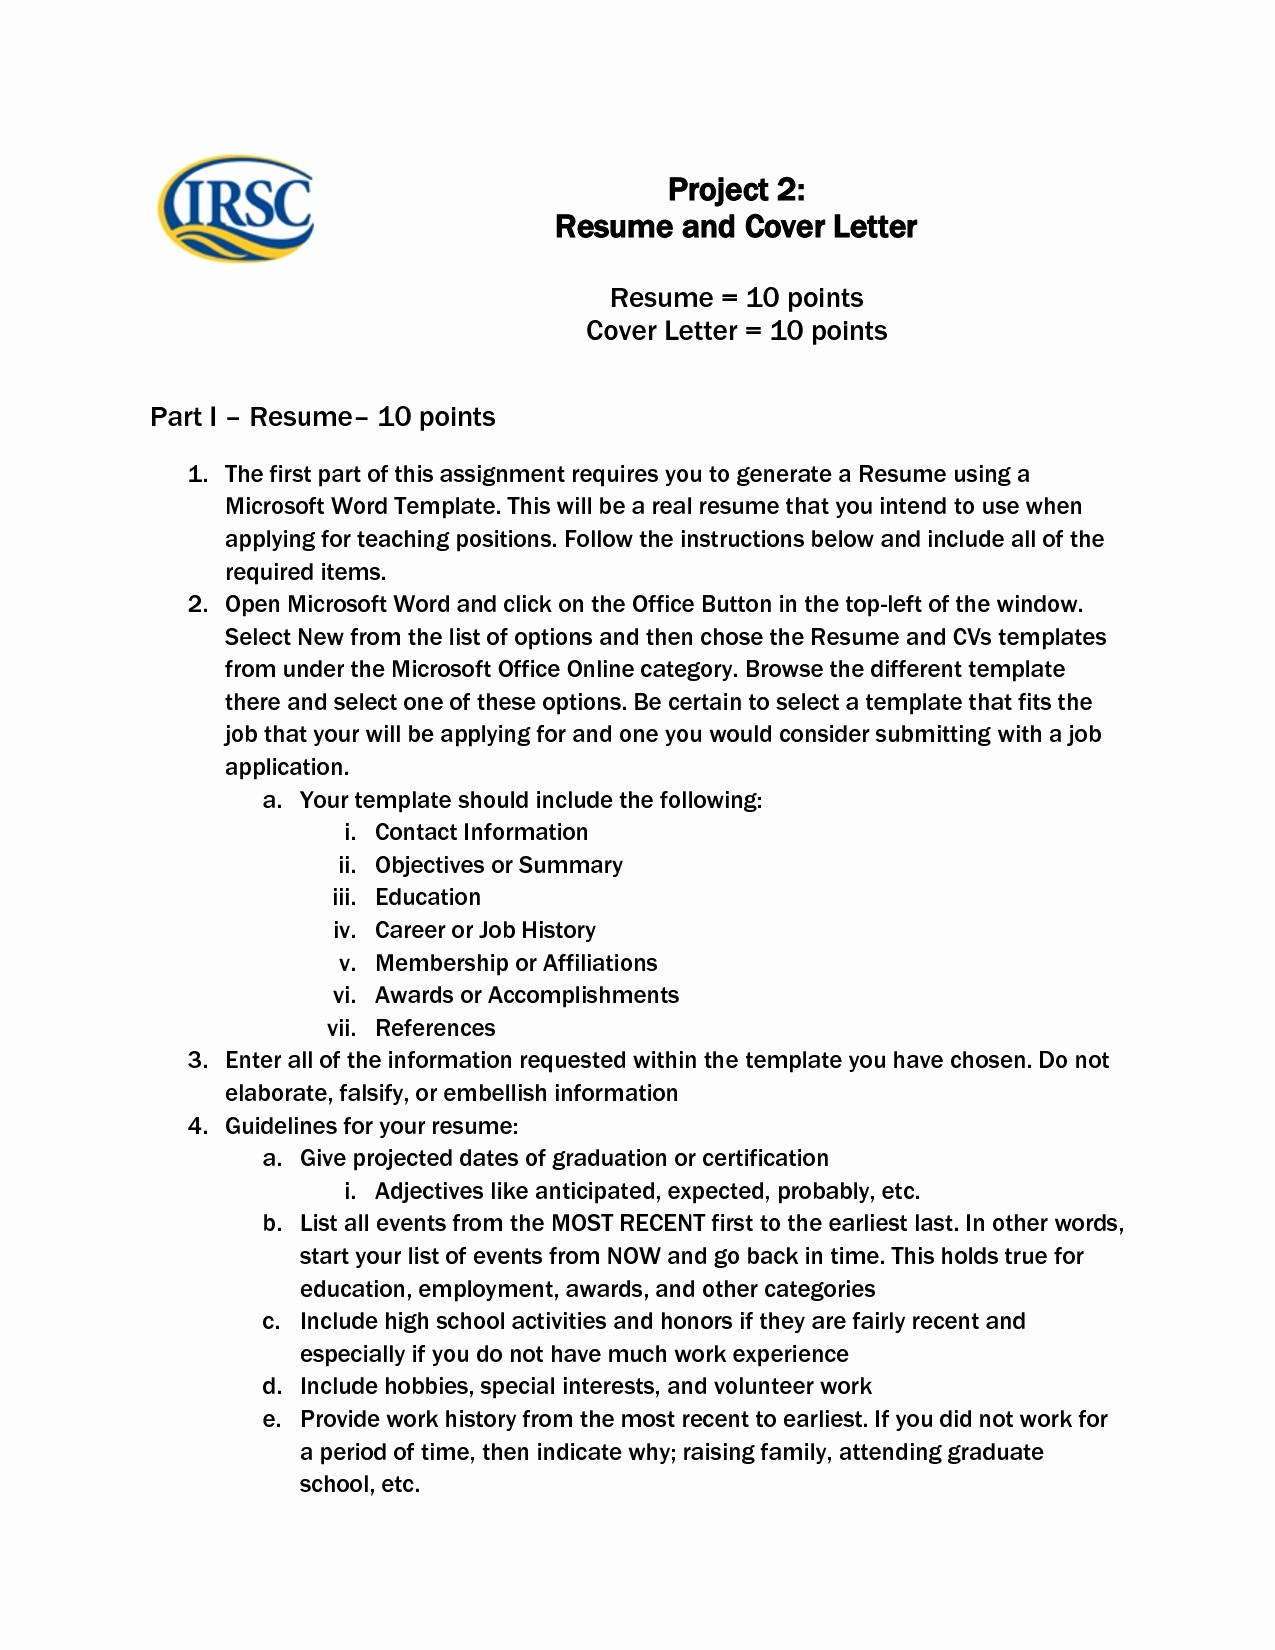 Cover Letter On A Resume New Resume Cover Letter Template 2017